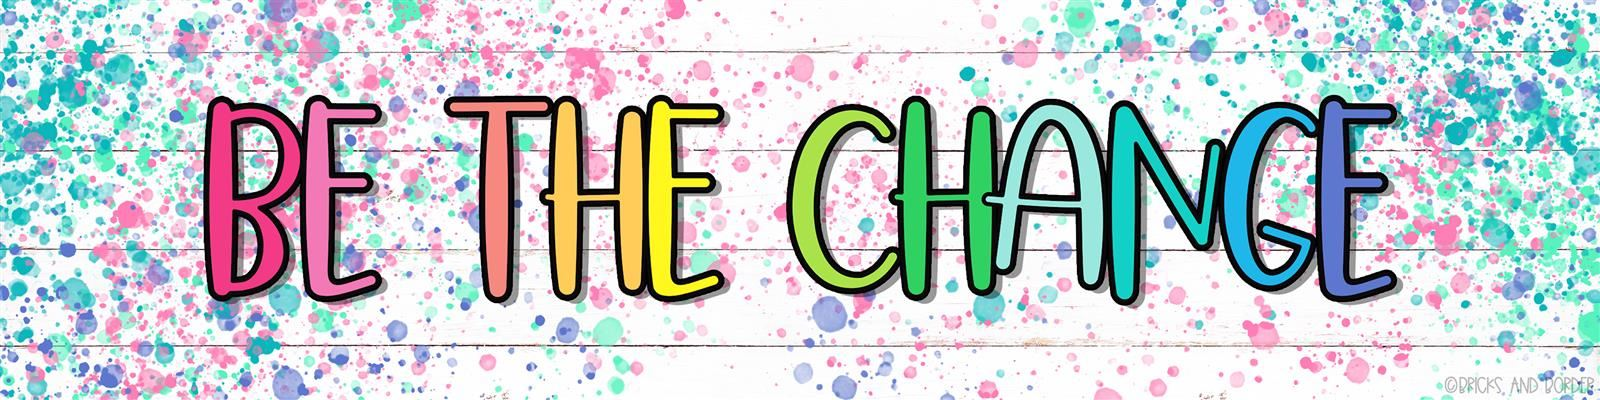 """Be the Change"" in colorful text"